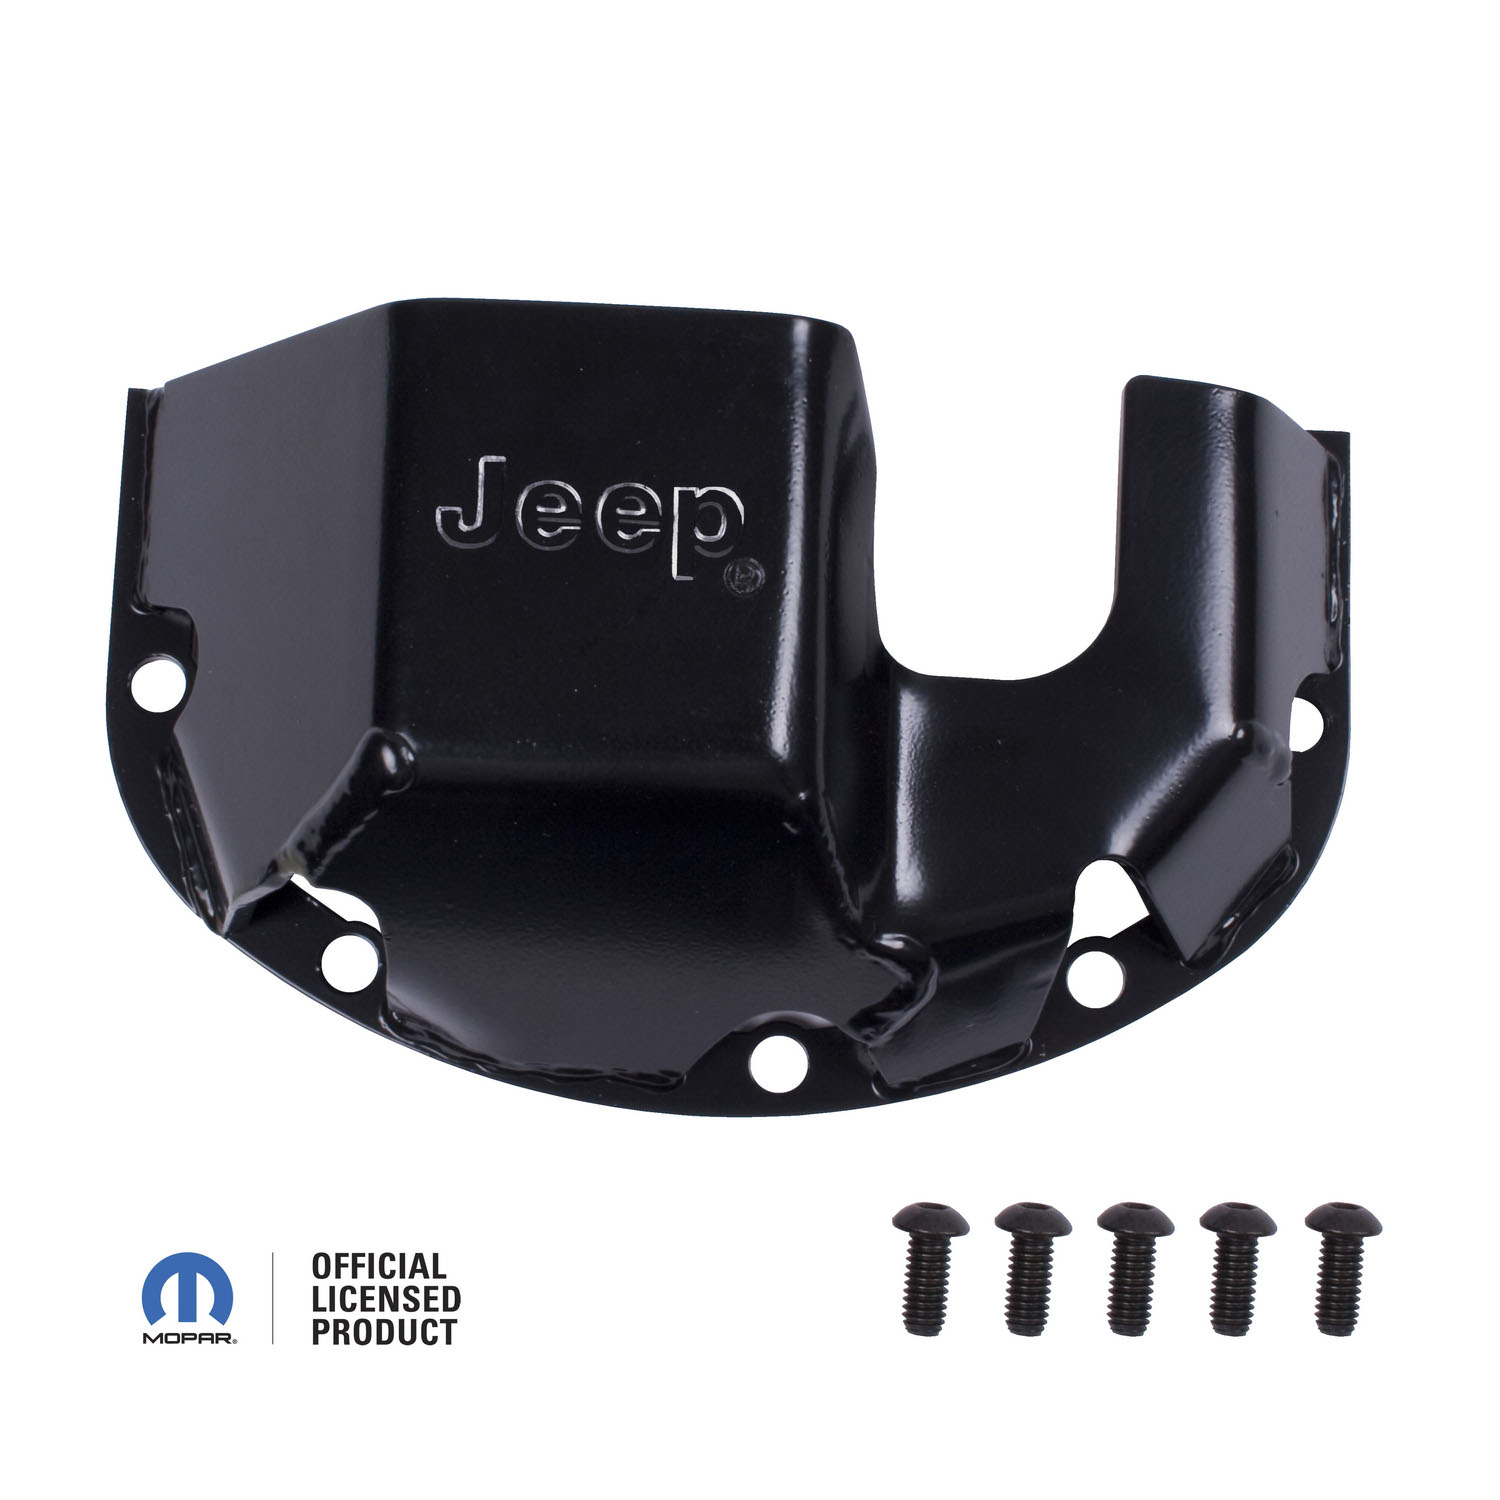 Skid Plate Differential Jeep logo for Dana 30